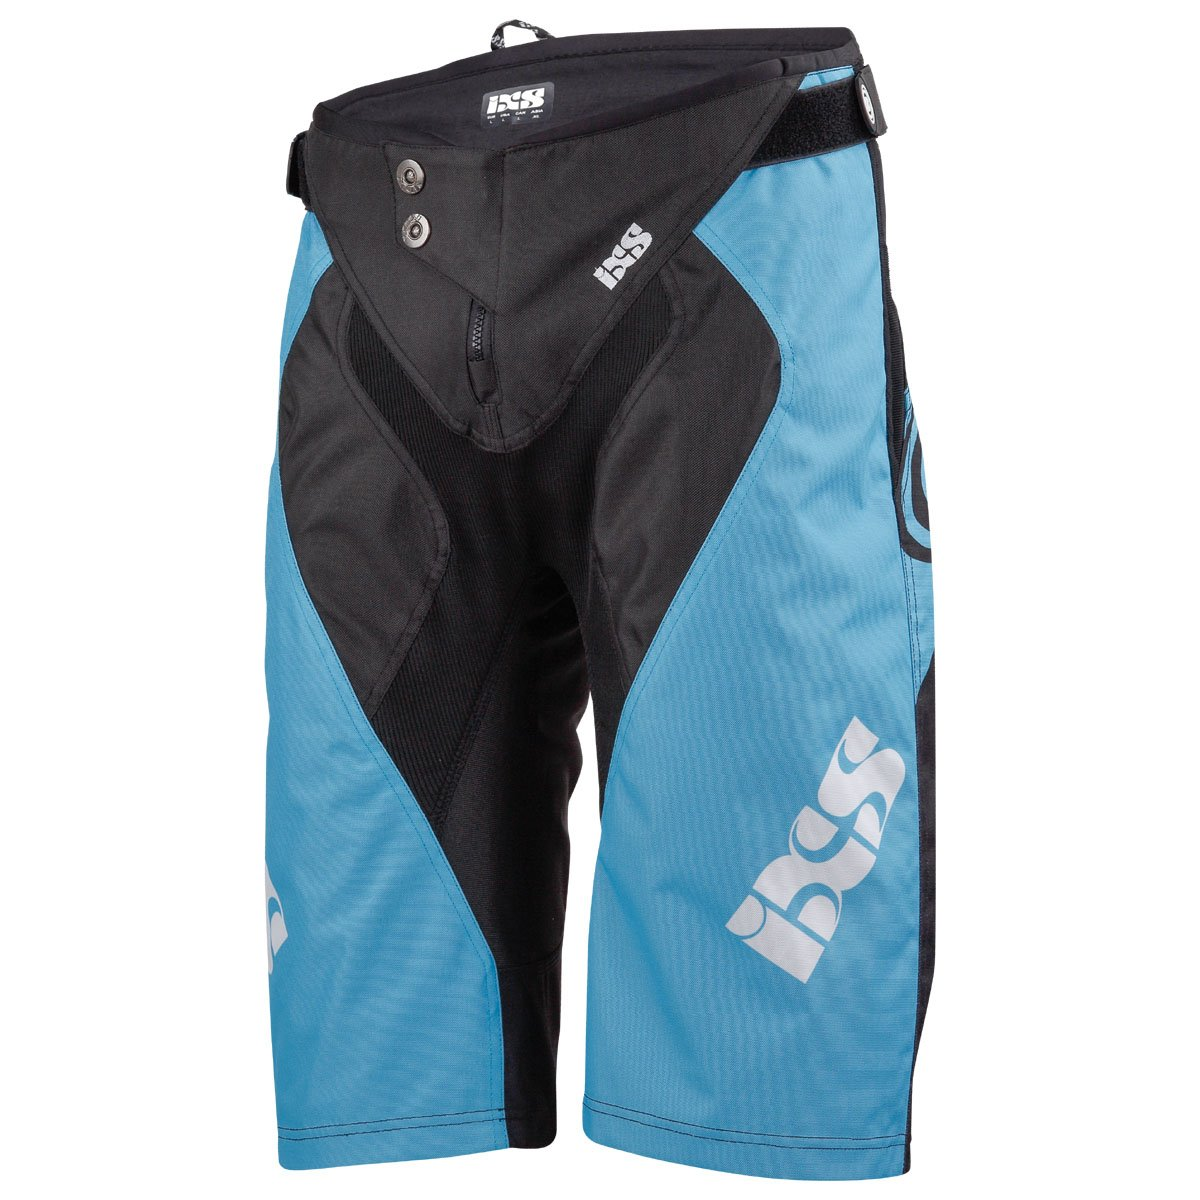 IXS Downhill-Short Race 7.1 Blau Gr. M